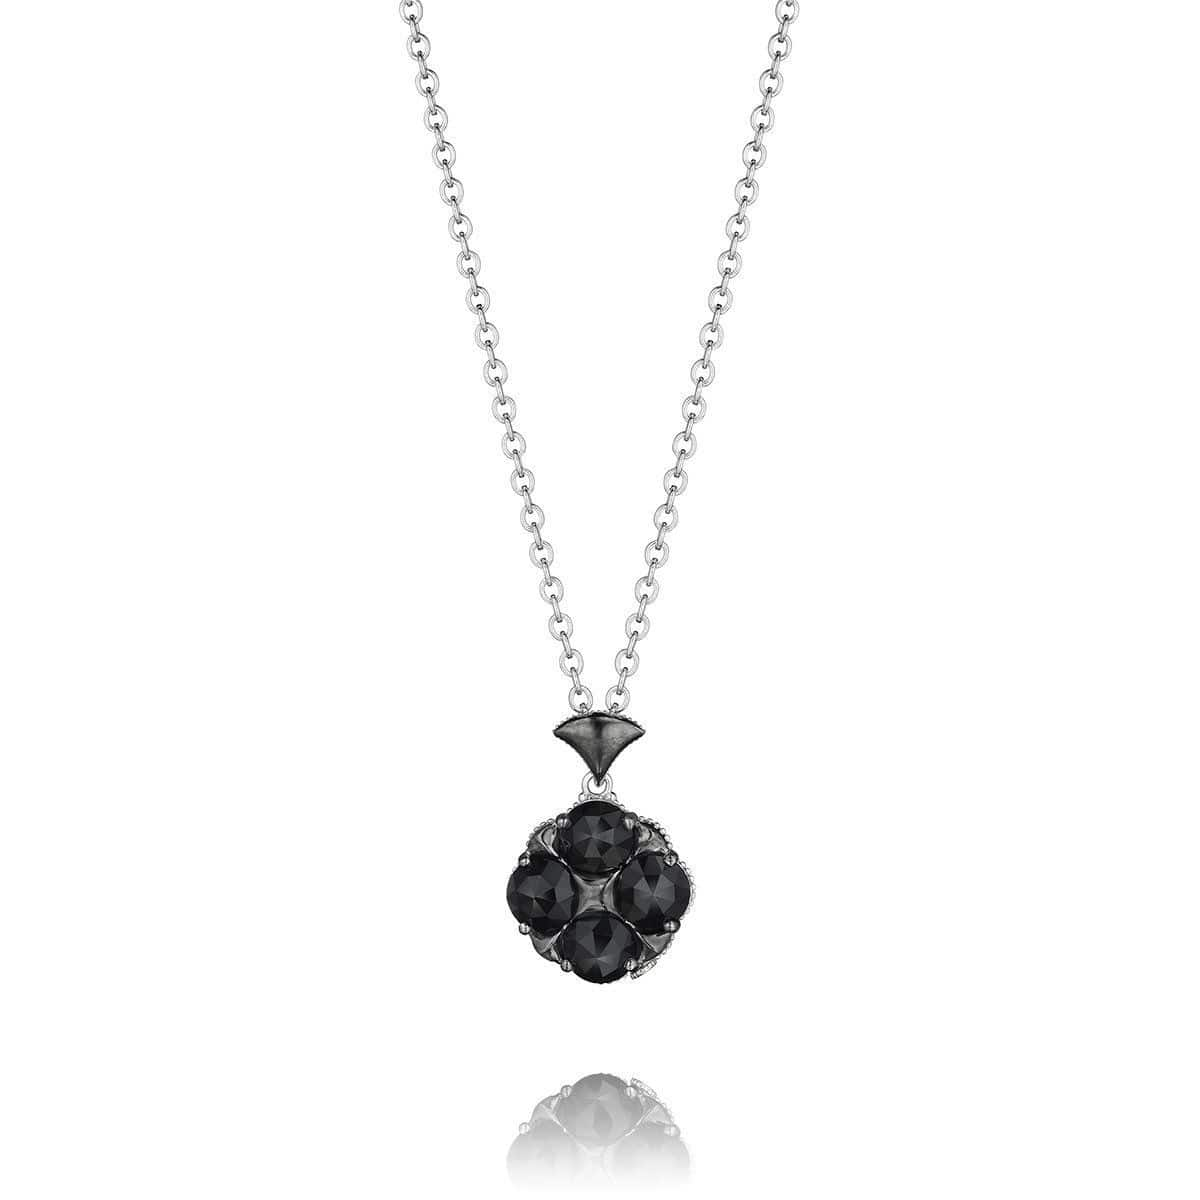 Silver Black Onyx Chain Necklace - SN16019